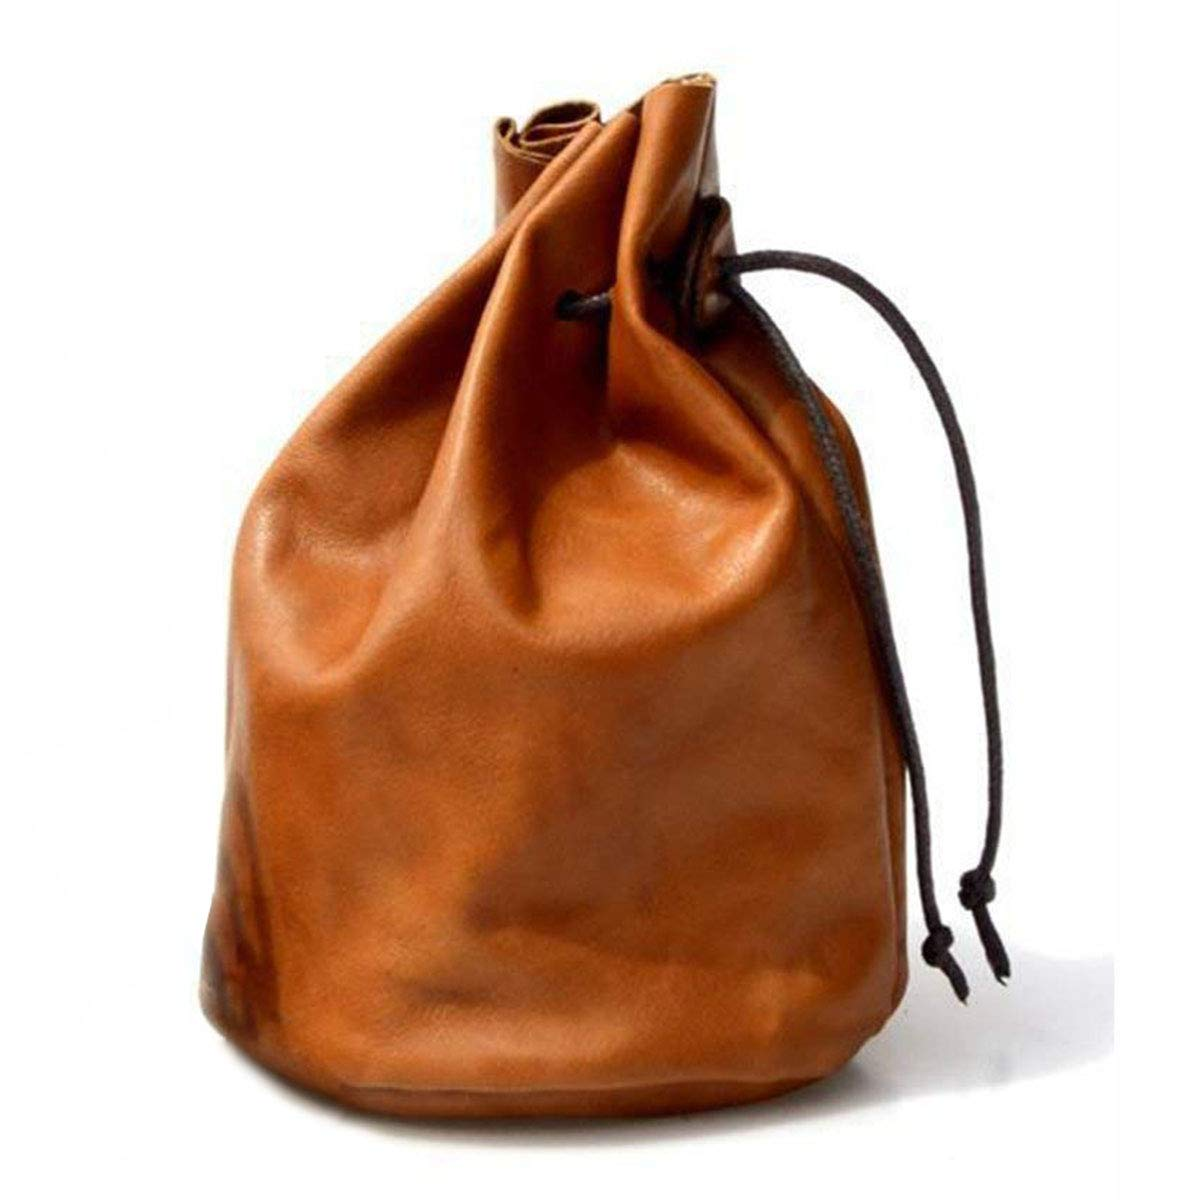 Handmade Ultra-Thin Soft Full Grain Cow Leather Drawstring Pouch Storage Bags, Brown (L) XMusk